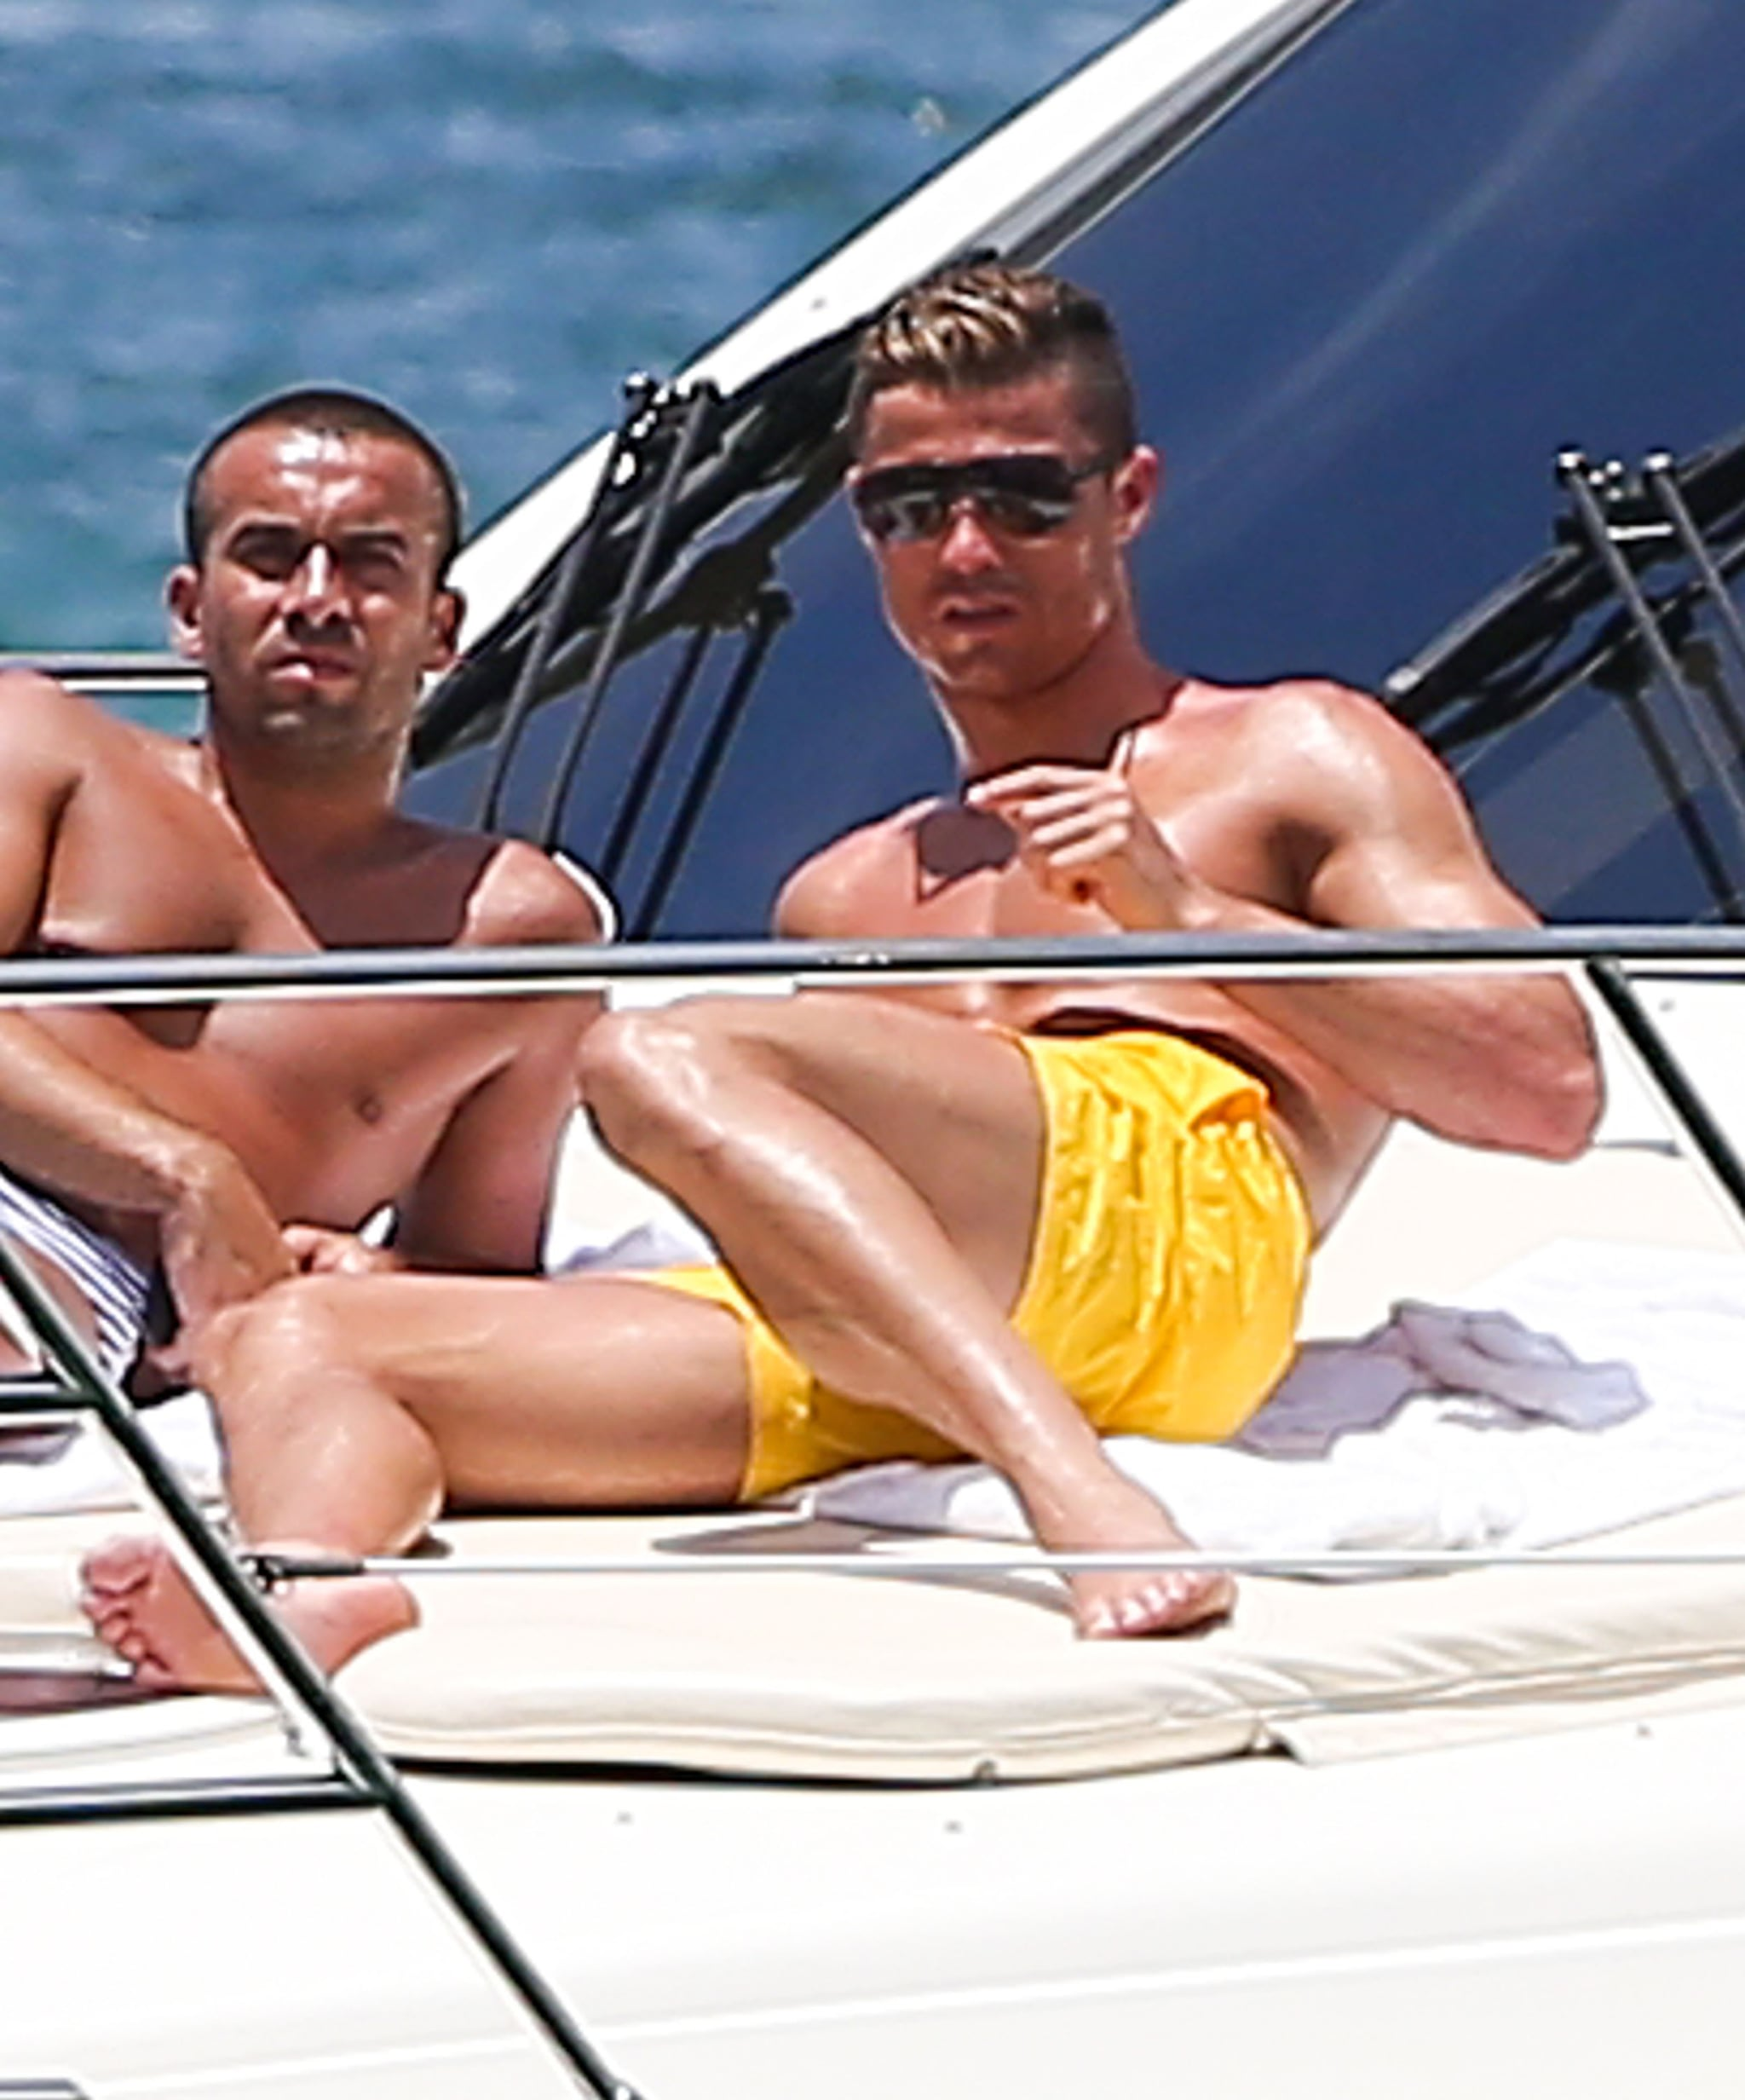 Cristiano Ronaldo chilled out shirtless on a Miami yacht with a friend in June.